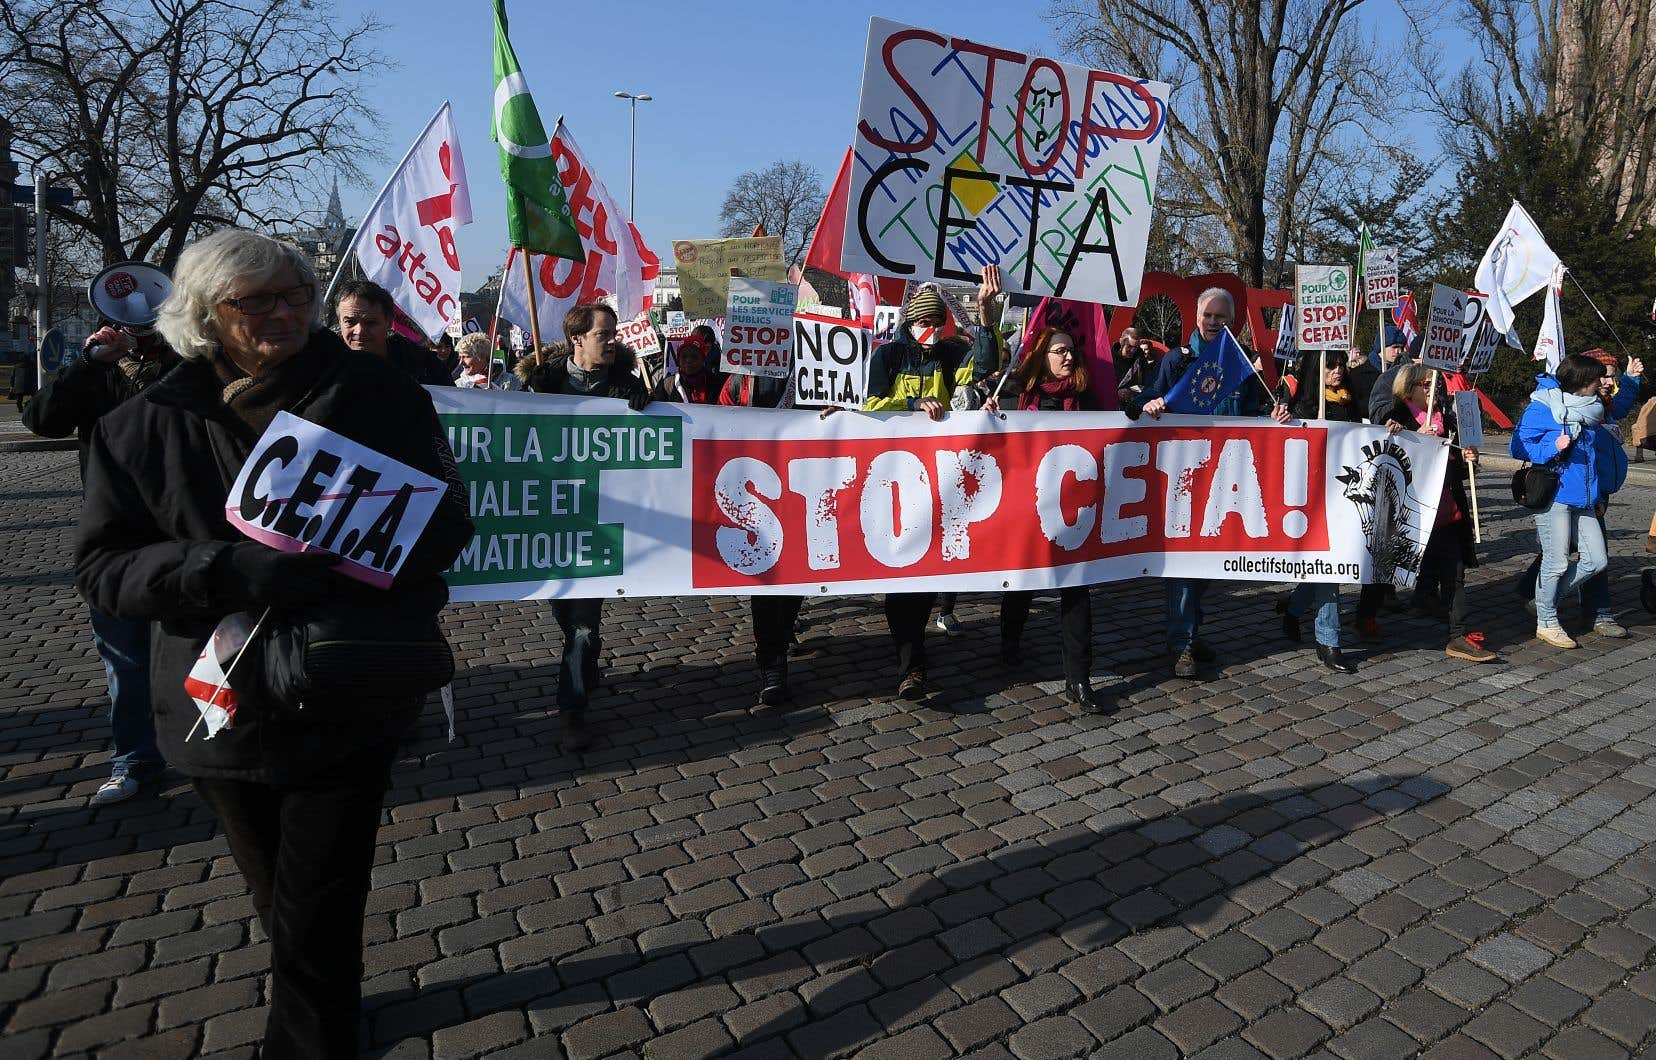 L'AECG (CETA) a suscité beaucoup d'opposition en Europe.